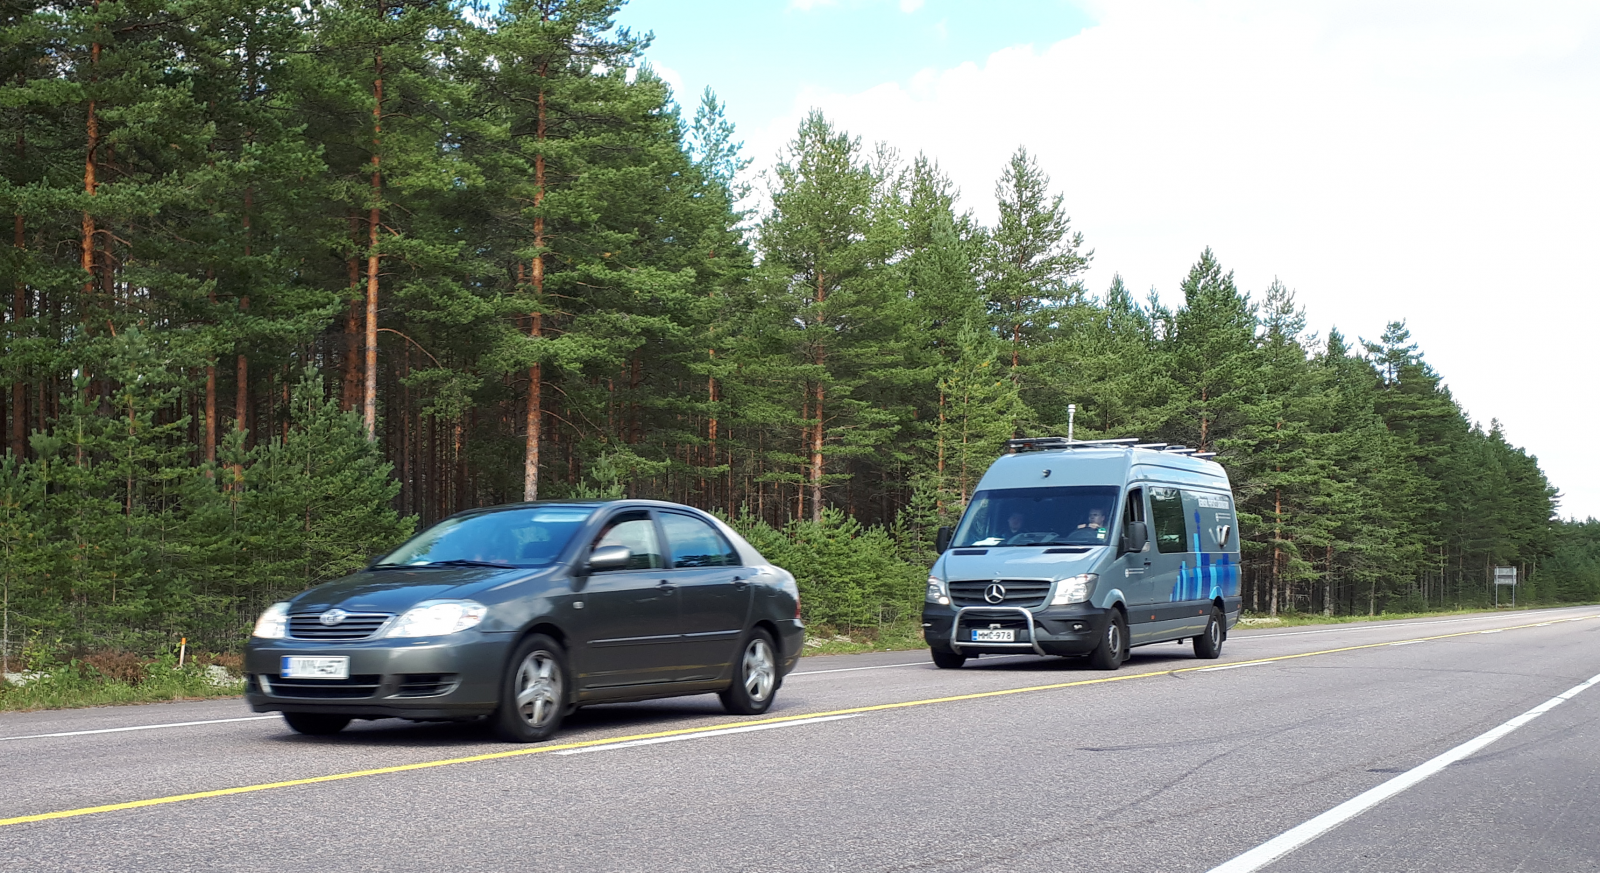 Chasing a passenger car with a mobile emission measurement laboratory